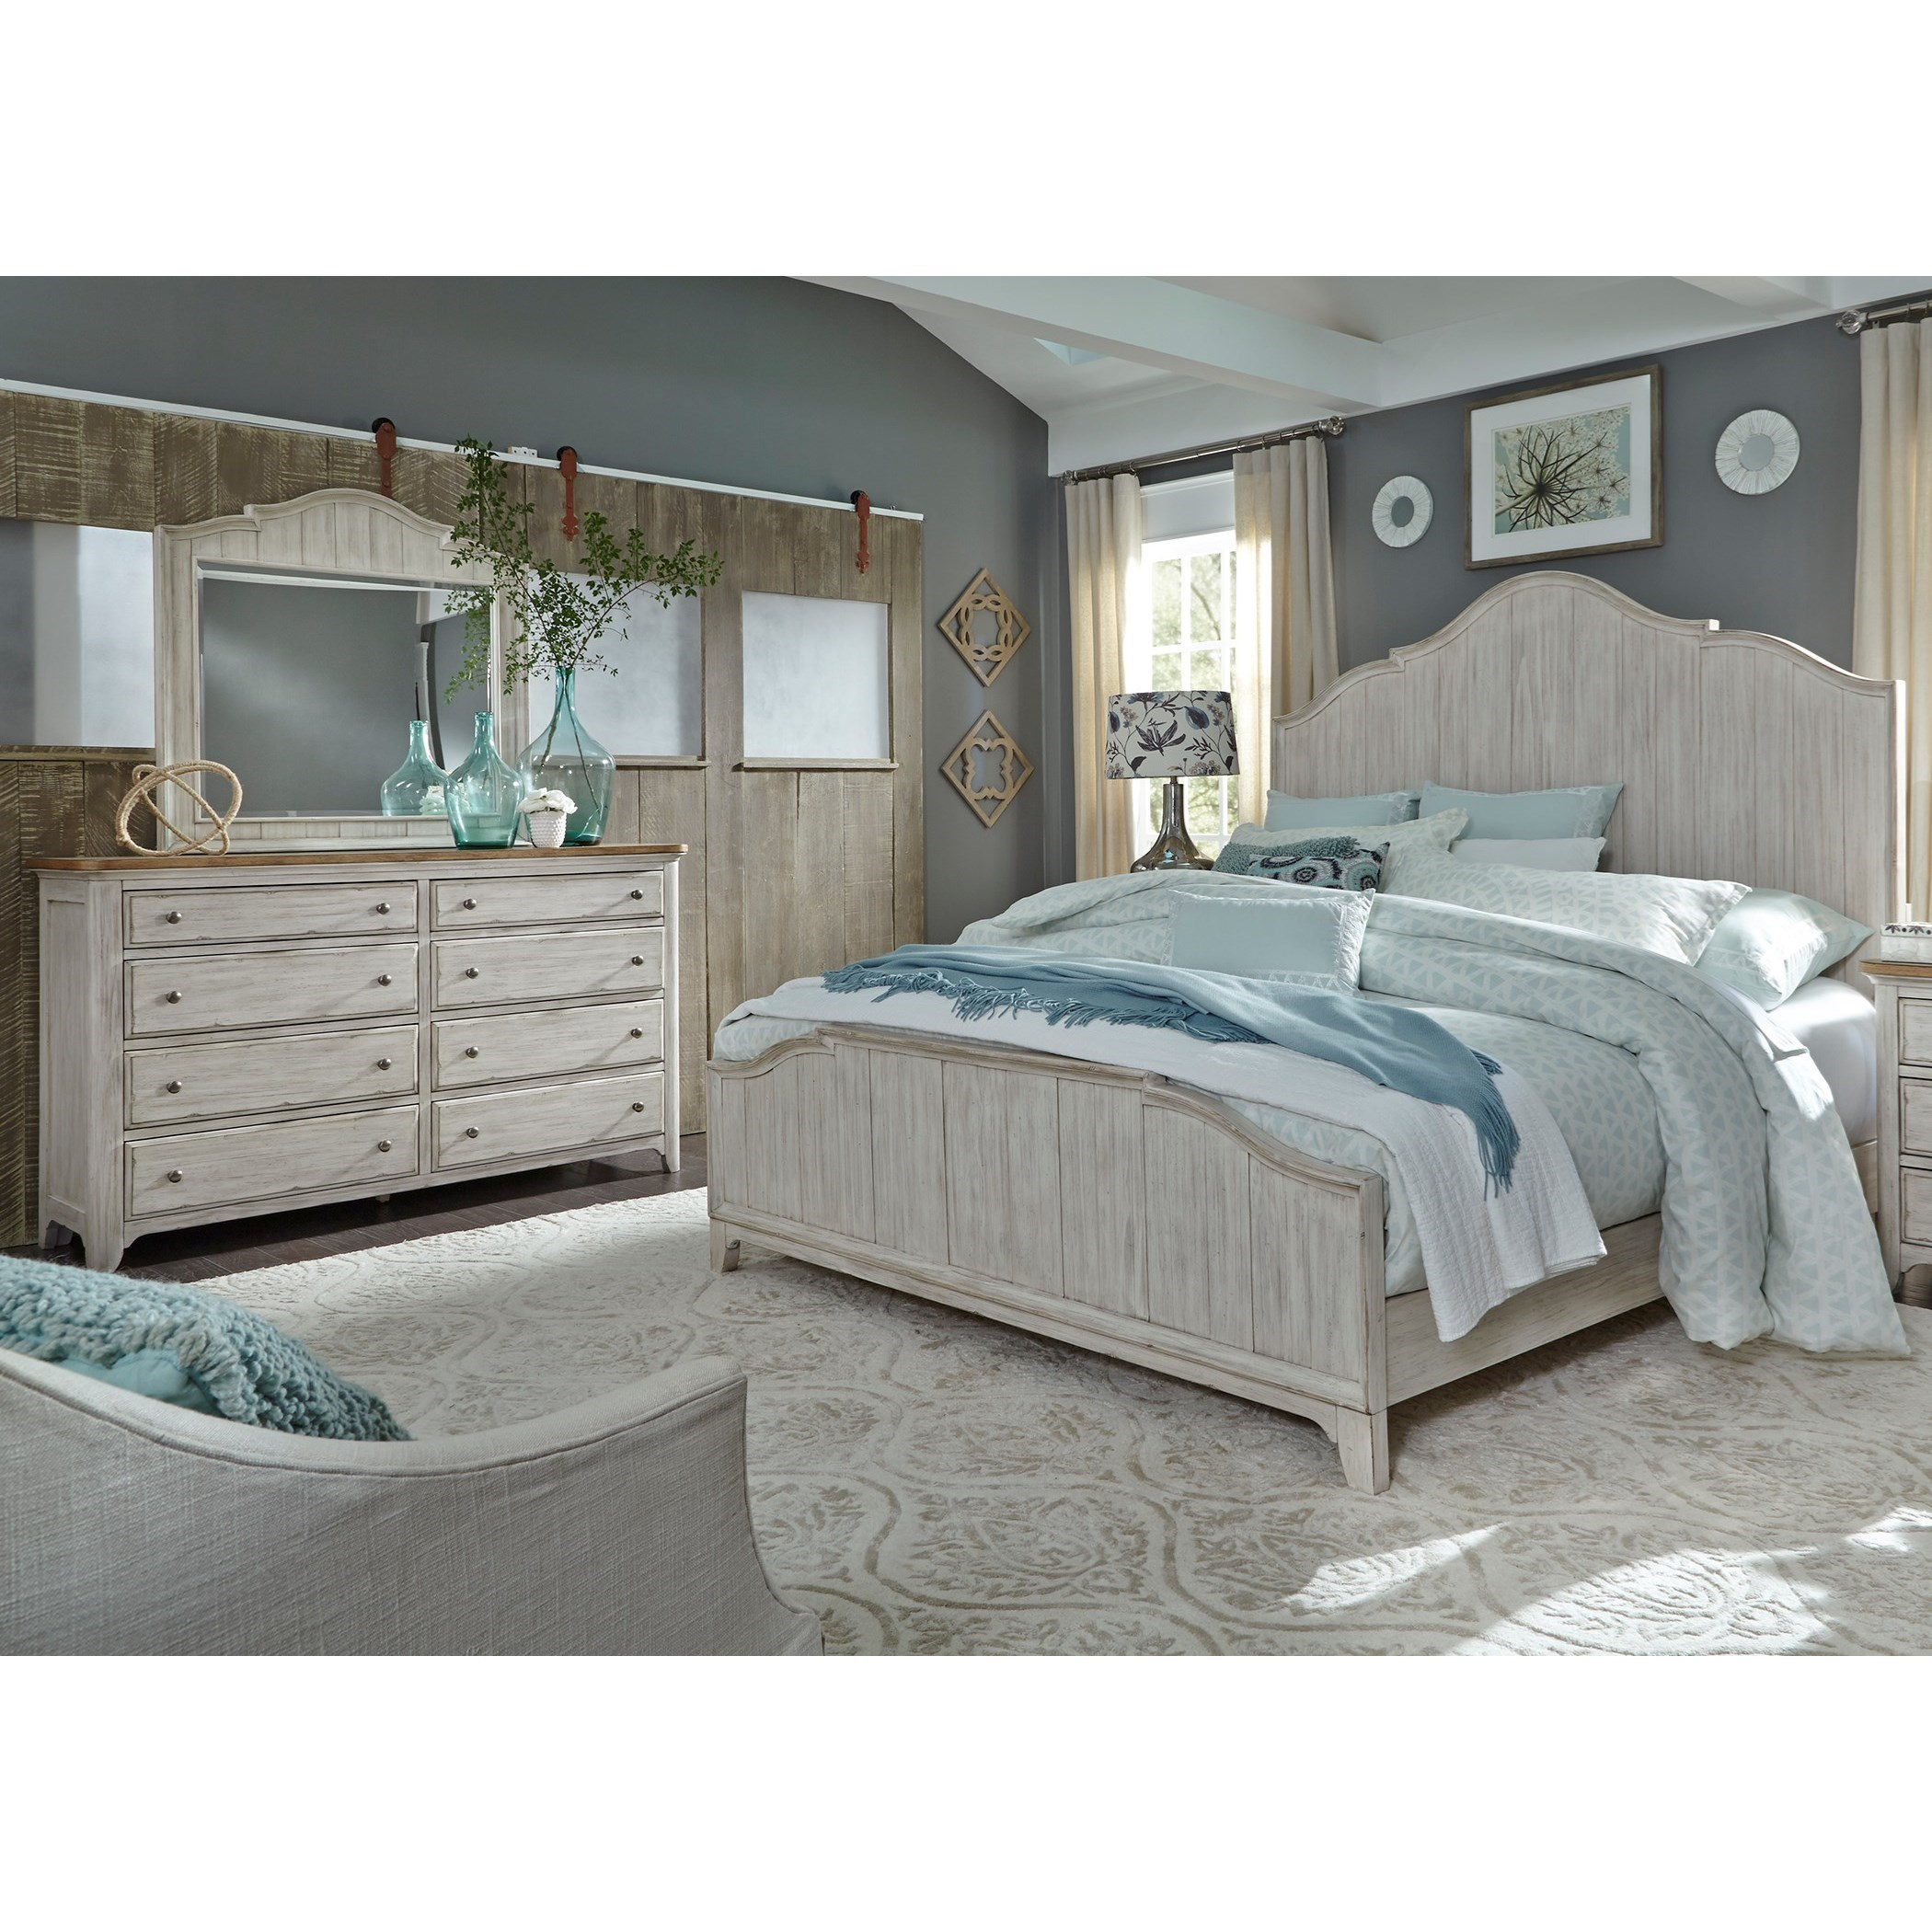 Liberty Furniture Farmhouse Reimagined Queen Bedroom Group - Item Number: 652-BR-QPBDM